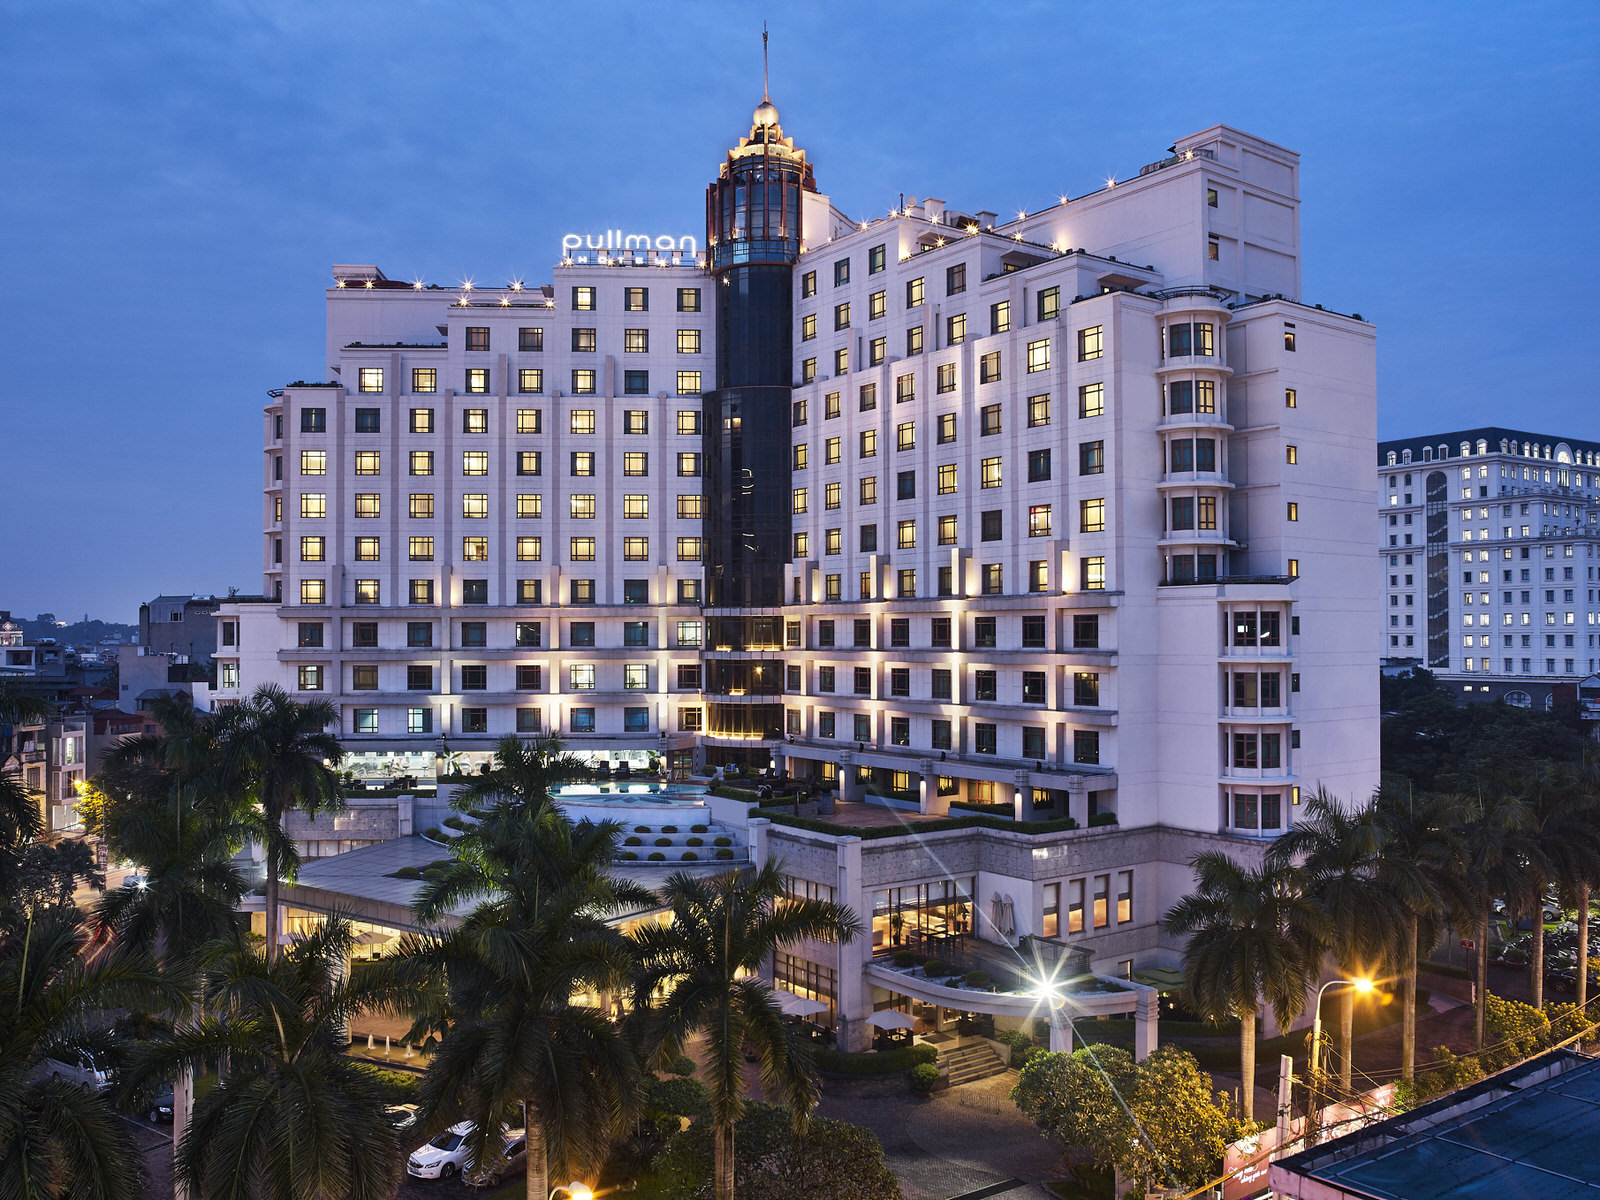 Pullman Hanoi dành giải thưởng World Luxury Business Hotel Awards 2018